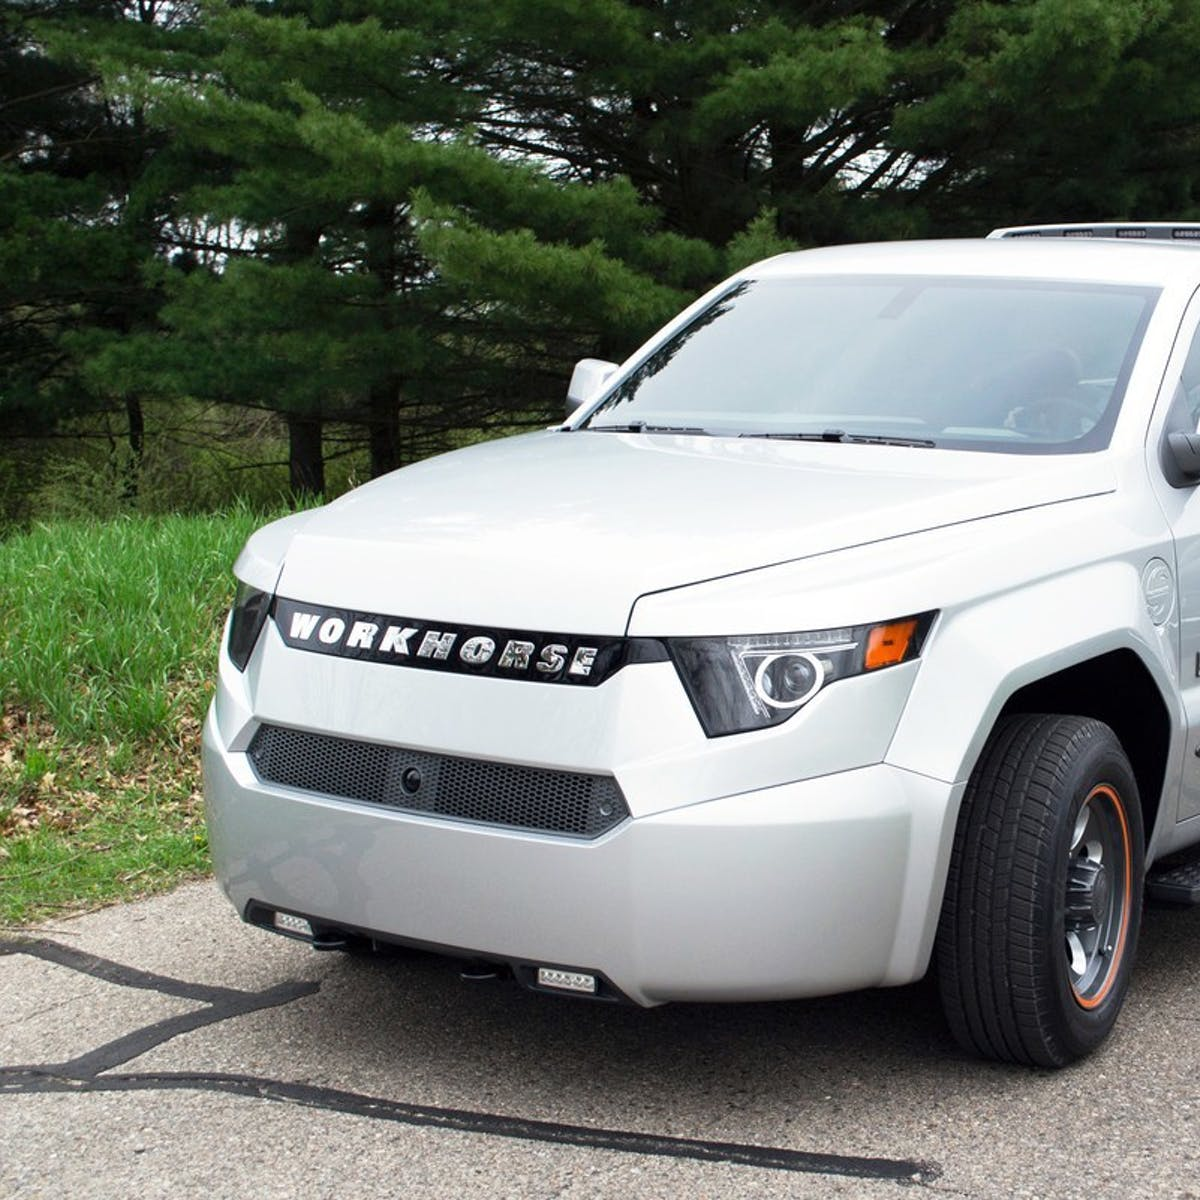 8 Photos of This Tesla Pickup Truck Competitor | Inverse